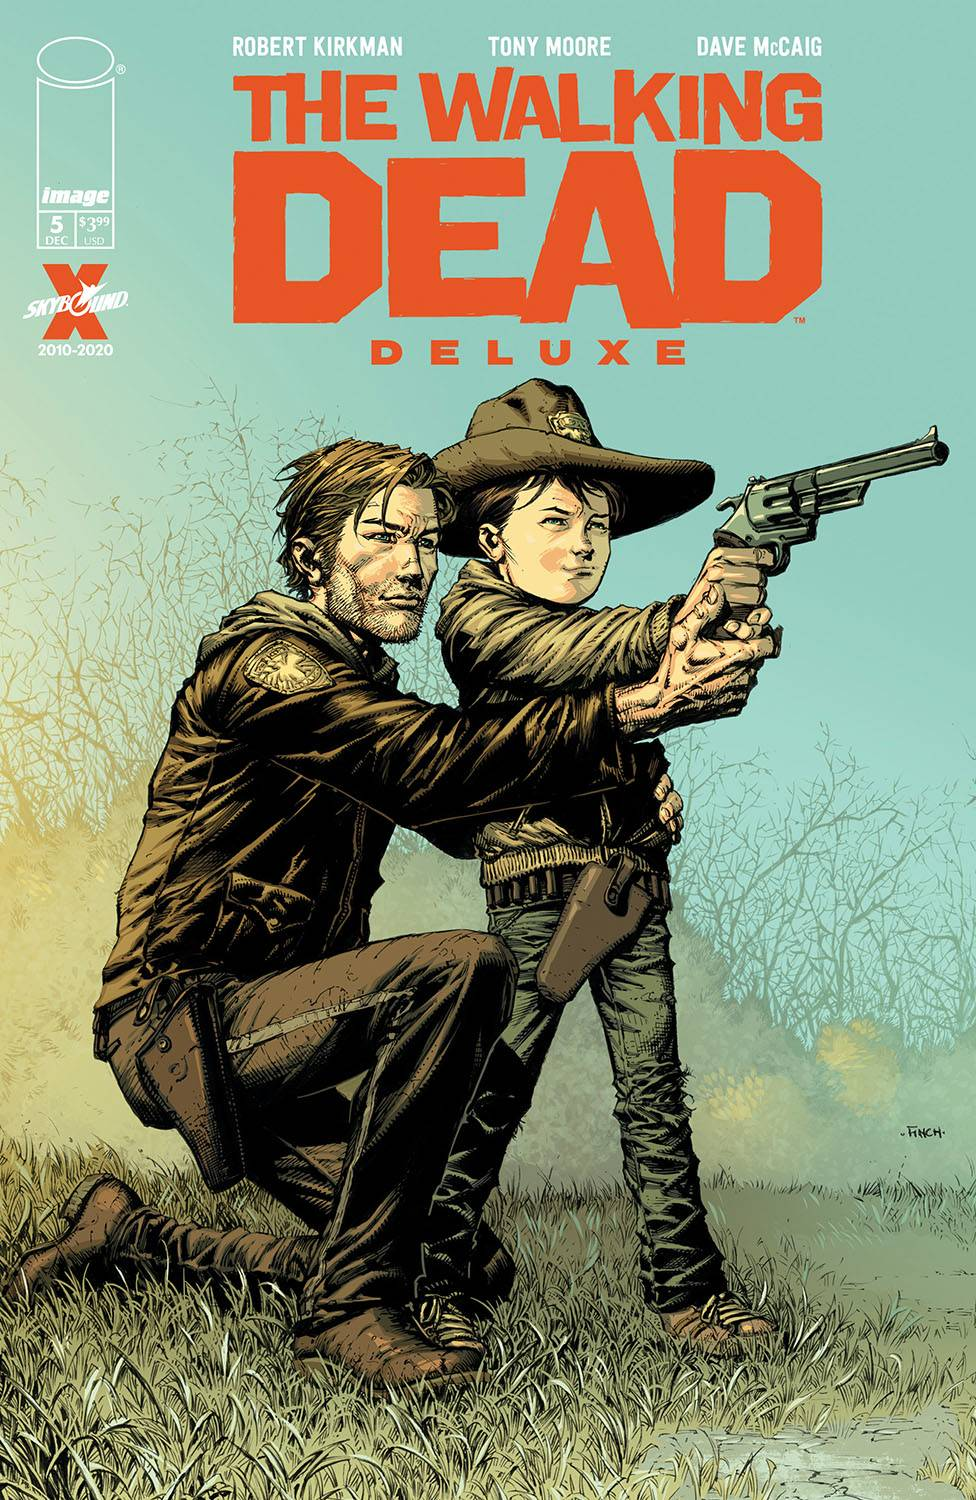 The Walking Dead Deluxe #5 (2020)